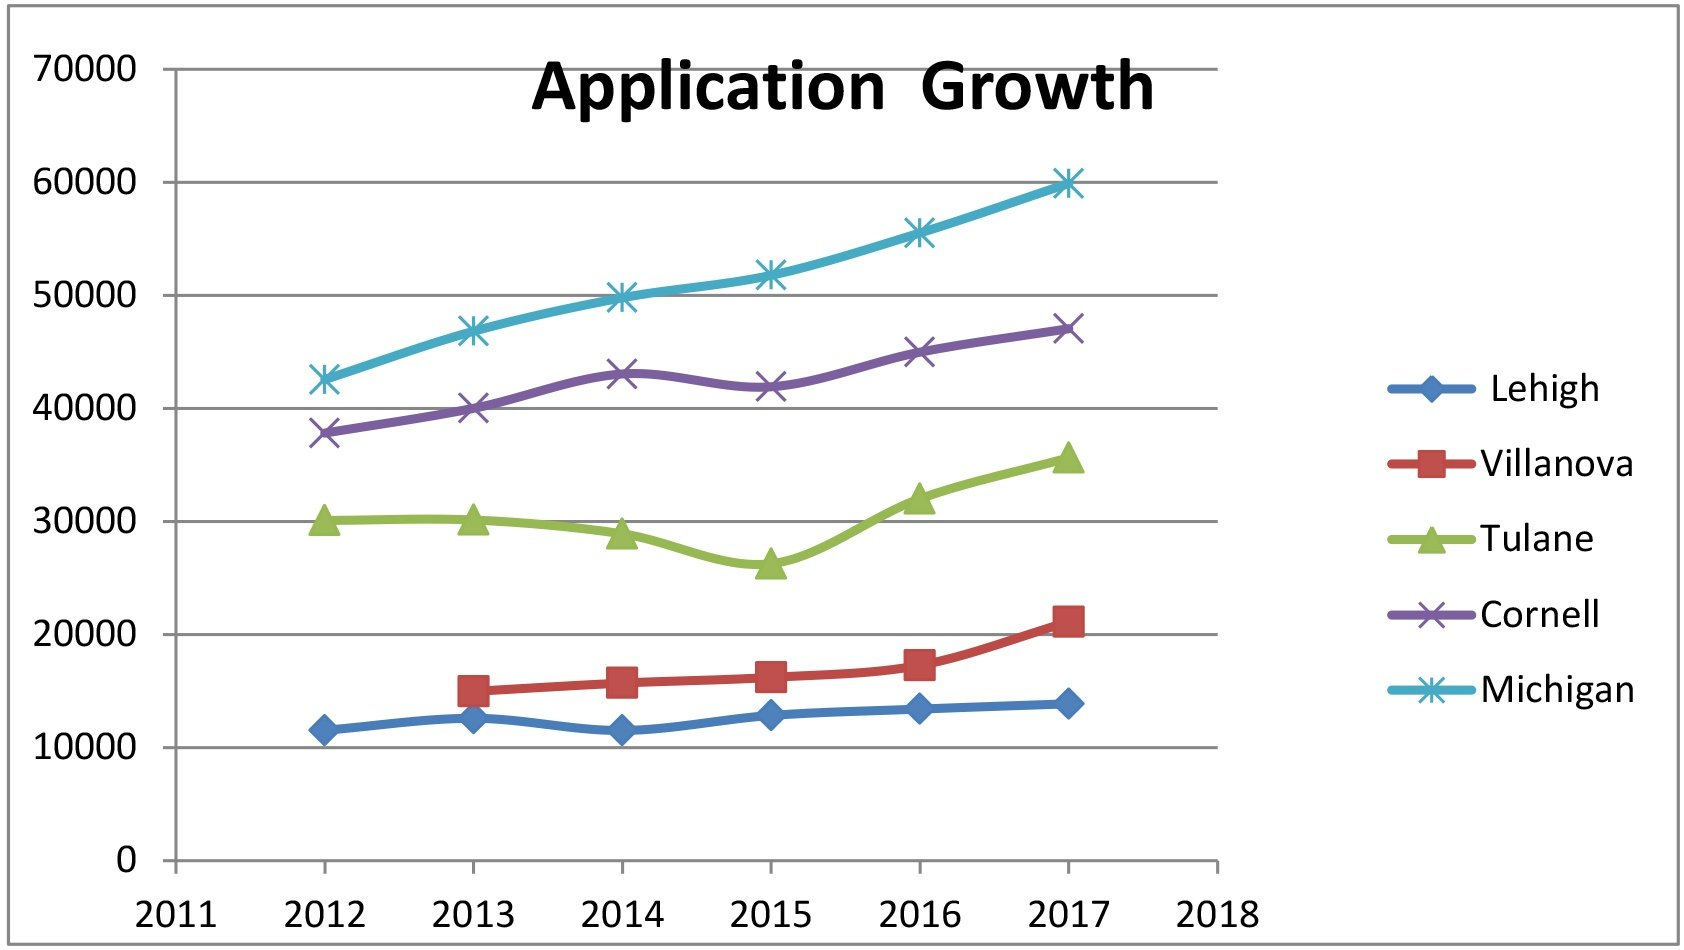 Application Growth Chart